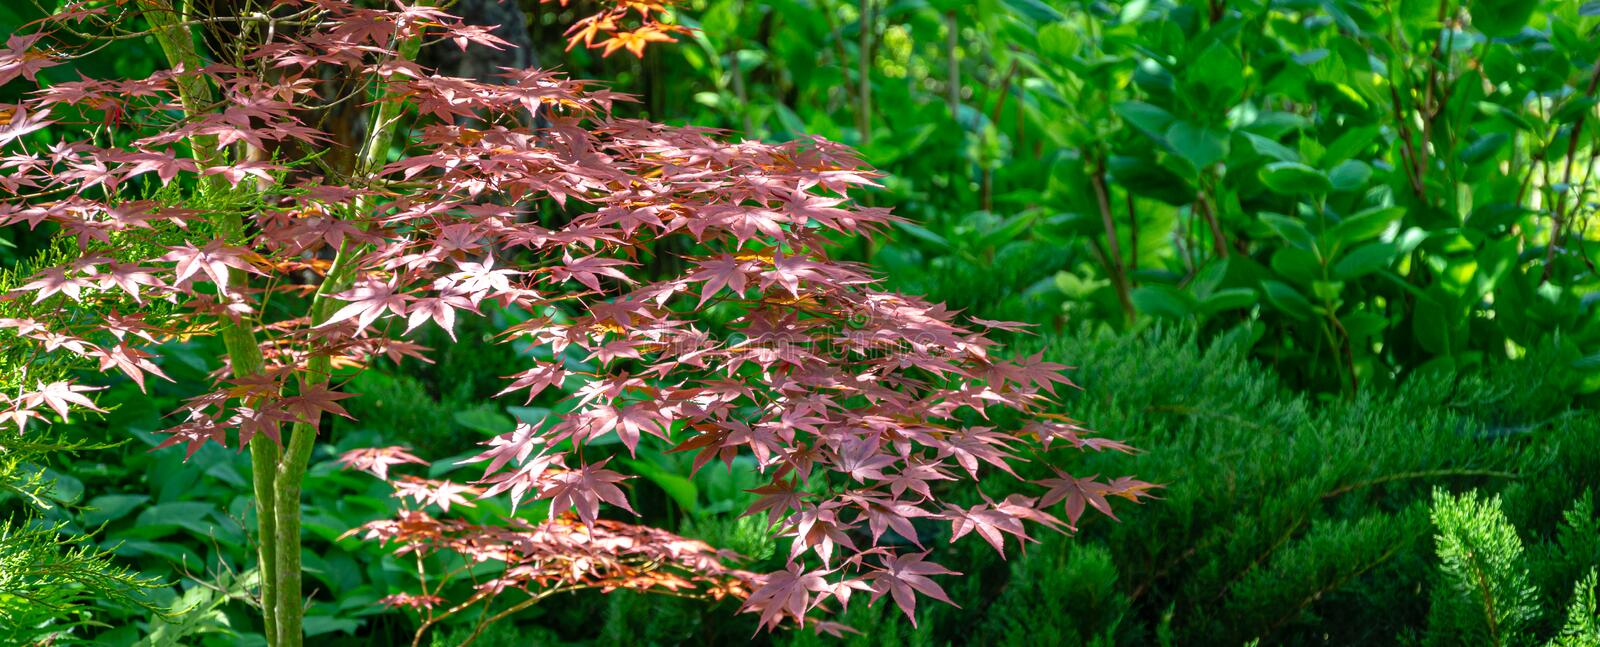 Graceful young red leaves of Japanese Maple, Acer palmatum Atropurpureum tree with purple leaves. In beautiful spring garden against backdrop of greenery stock image